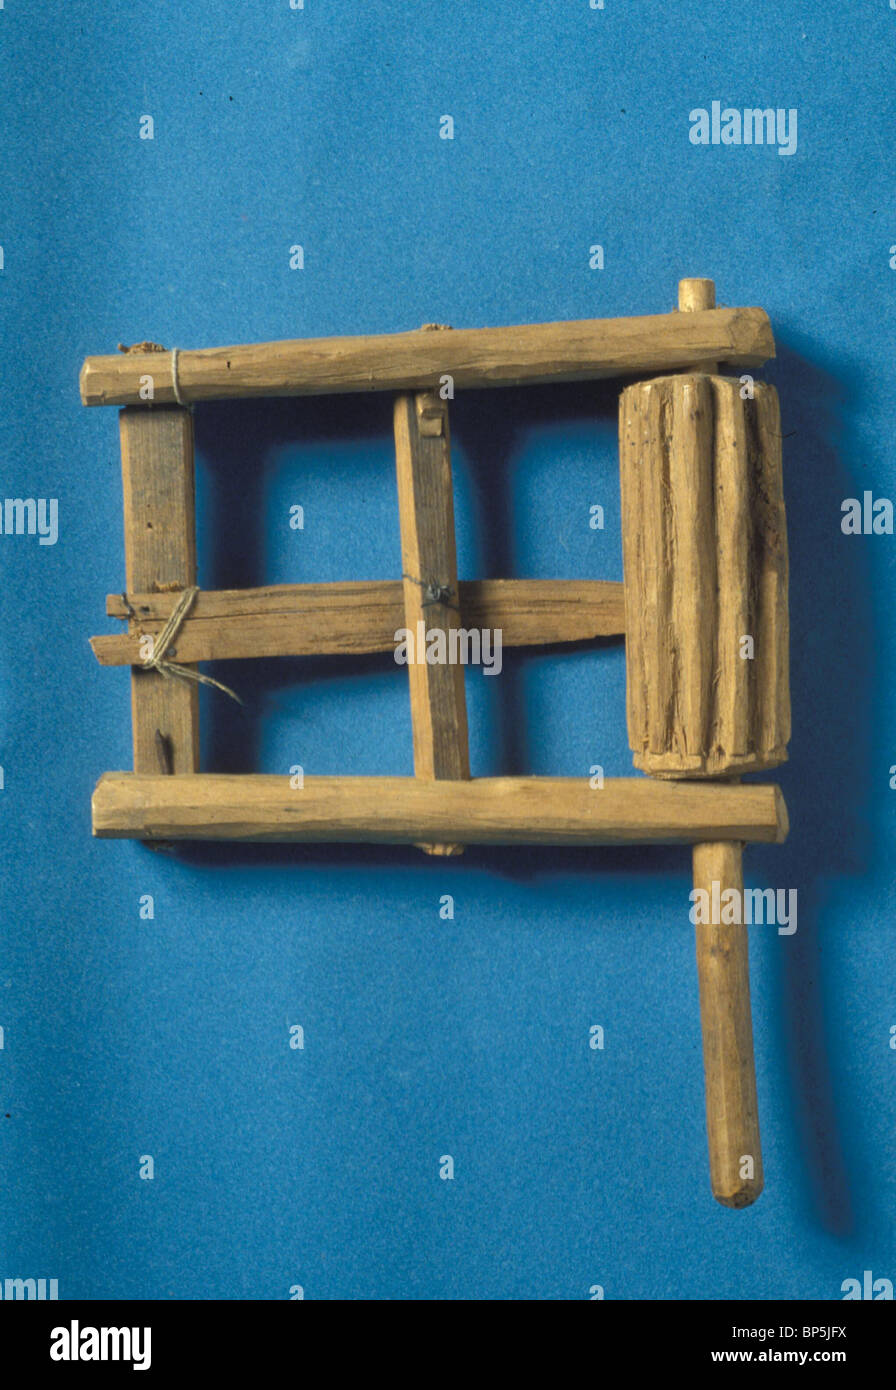 3892. PURIM NOISE MAKER, 'KLAPPER', USED IN CEREMONIES WHEN THE NAME OF HAMAN IS MENTIONED AND FOR MARYMAKING - Stock Image